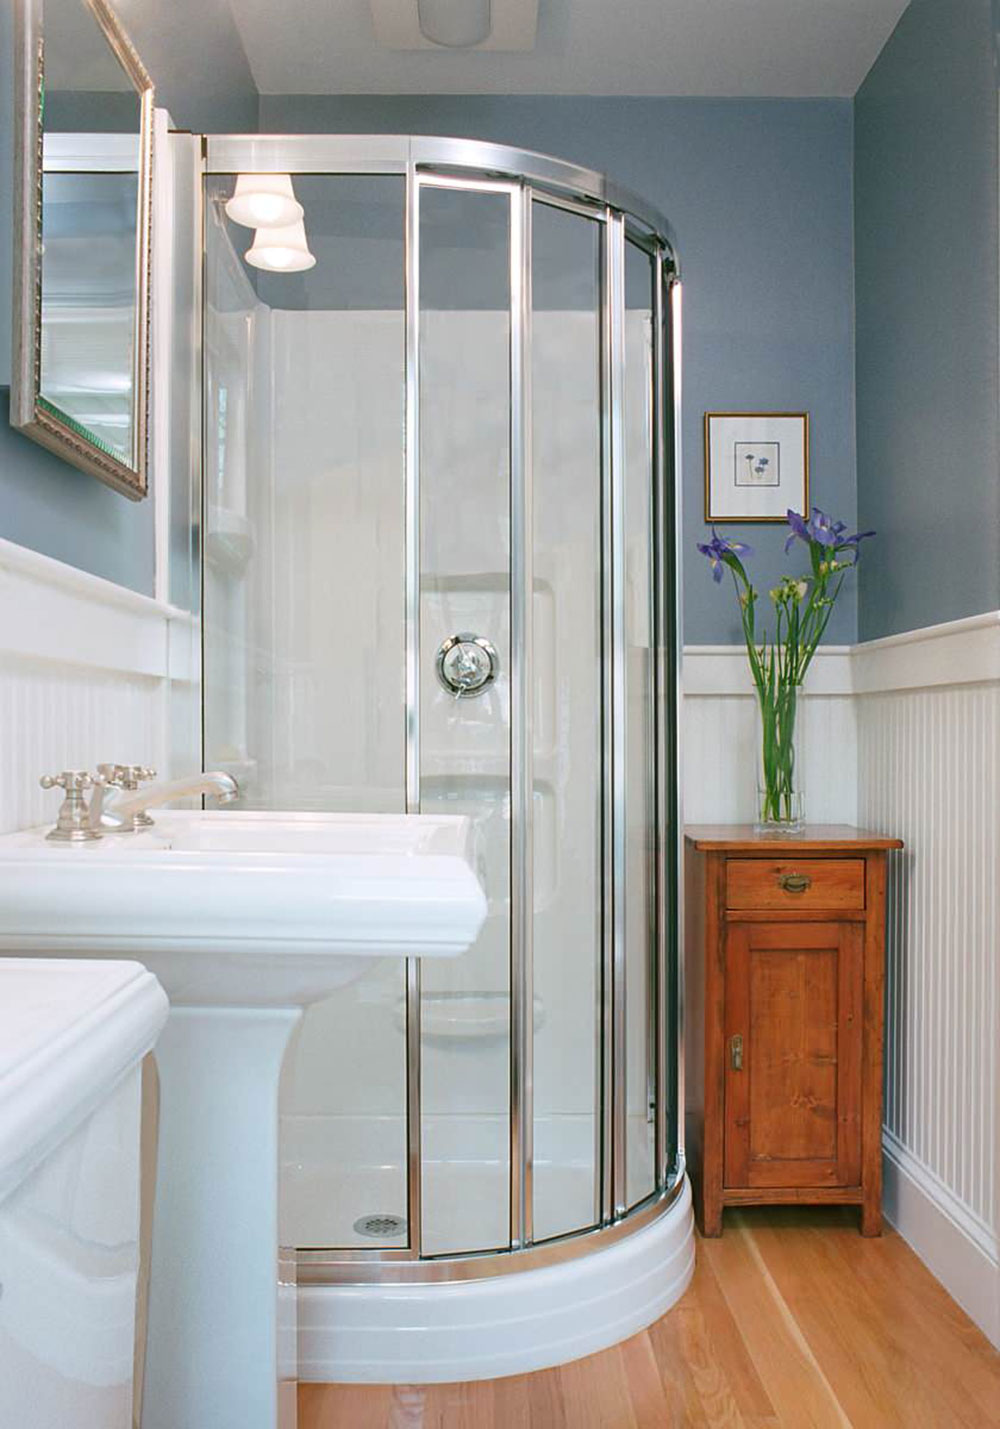 How To Make A Small Bathroom Look Bigger Tips And Ideas - Tiny-bathrooms